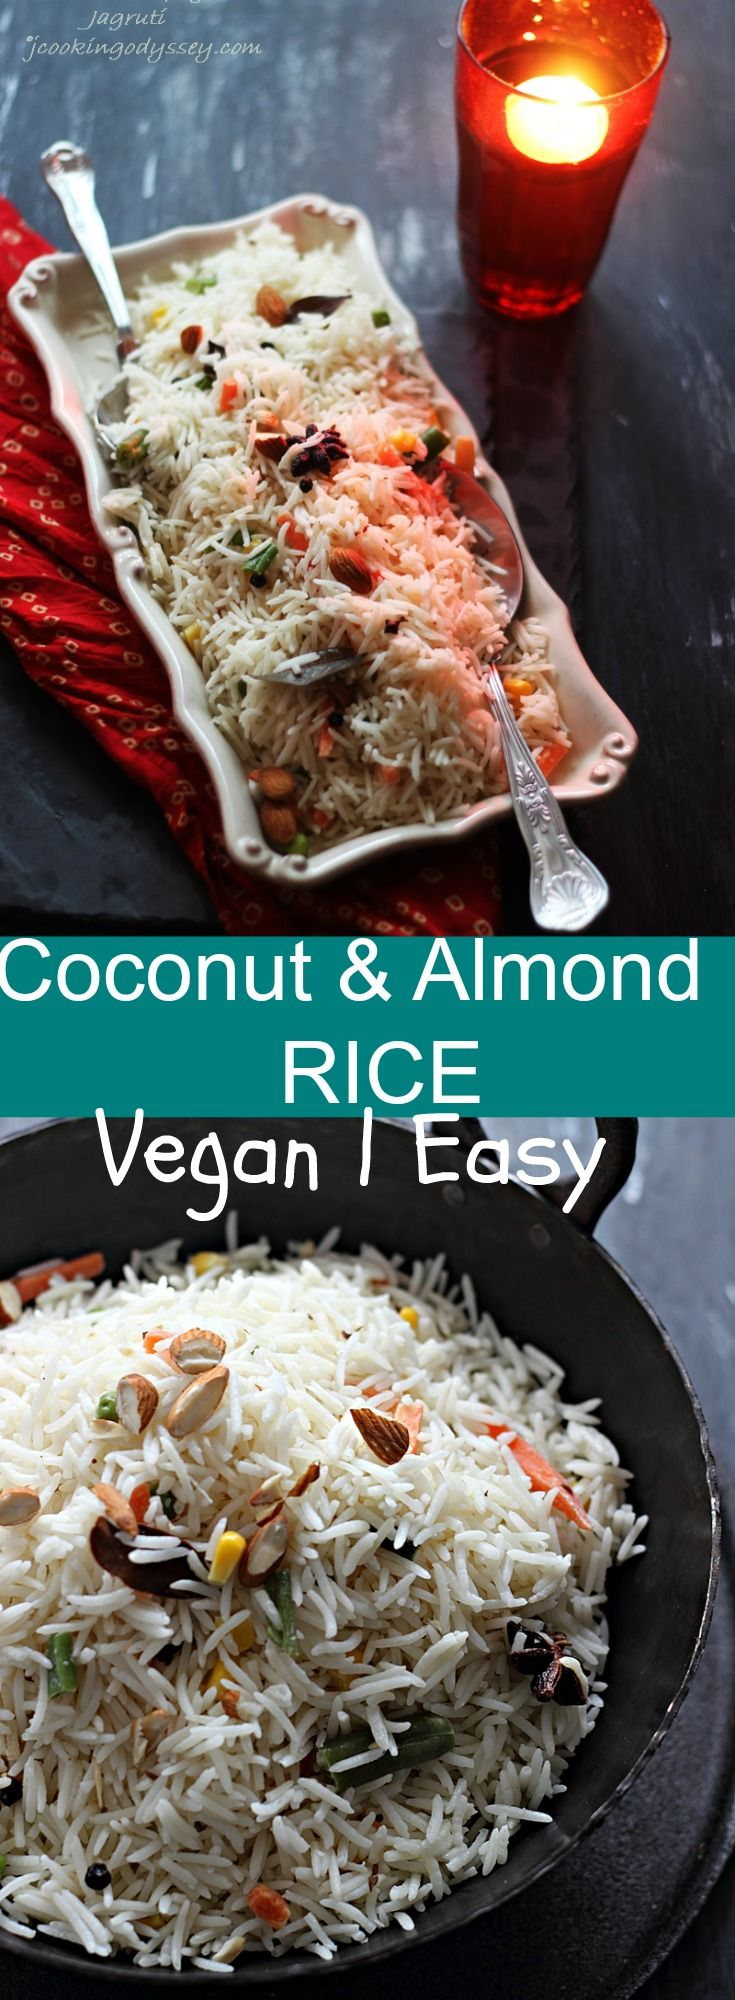 Coconut and almond Rice